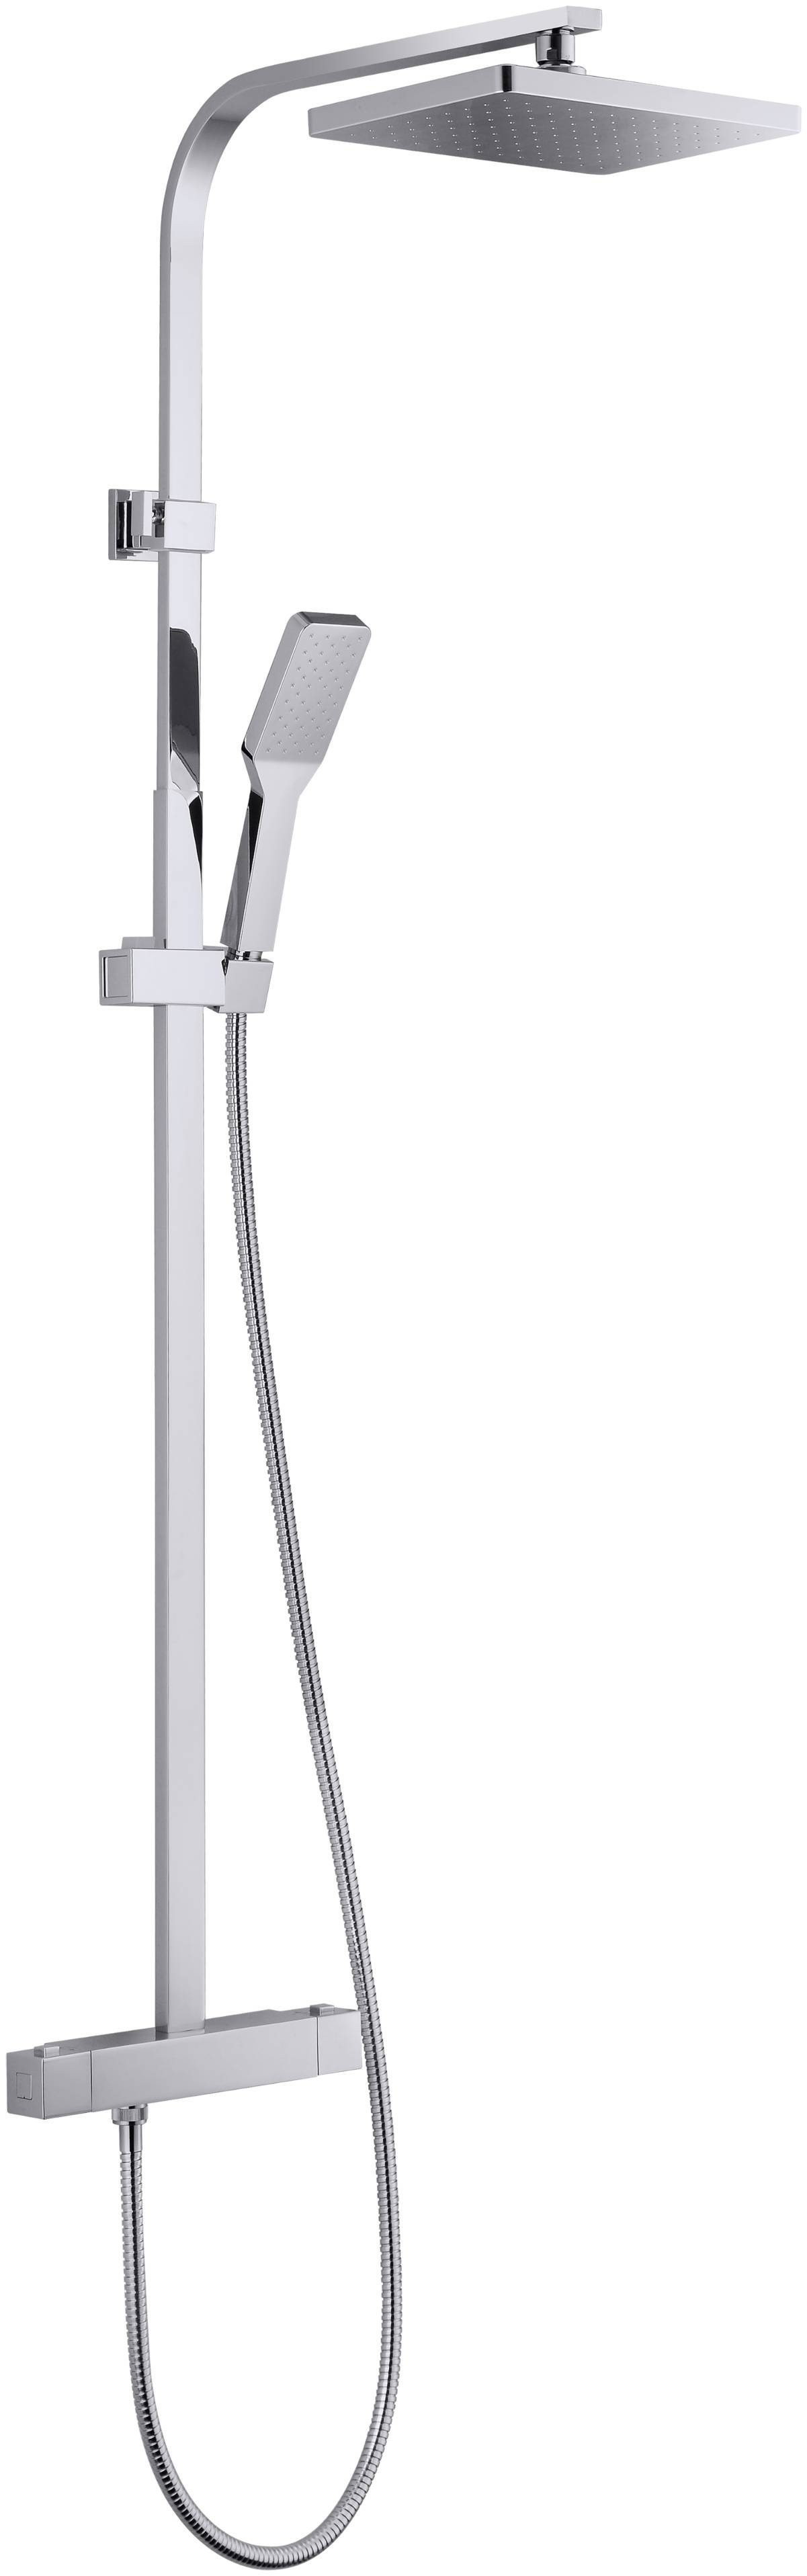 71320 thermo combi shower square BJT-BL30001